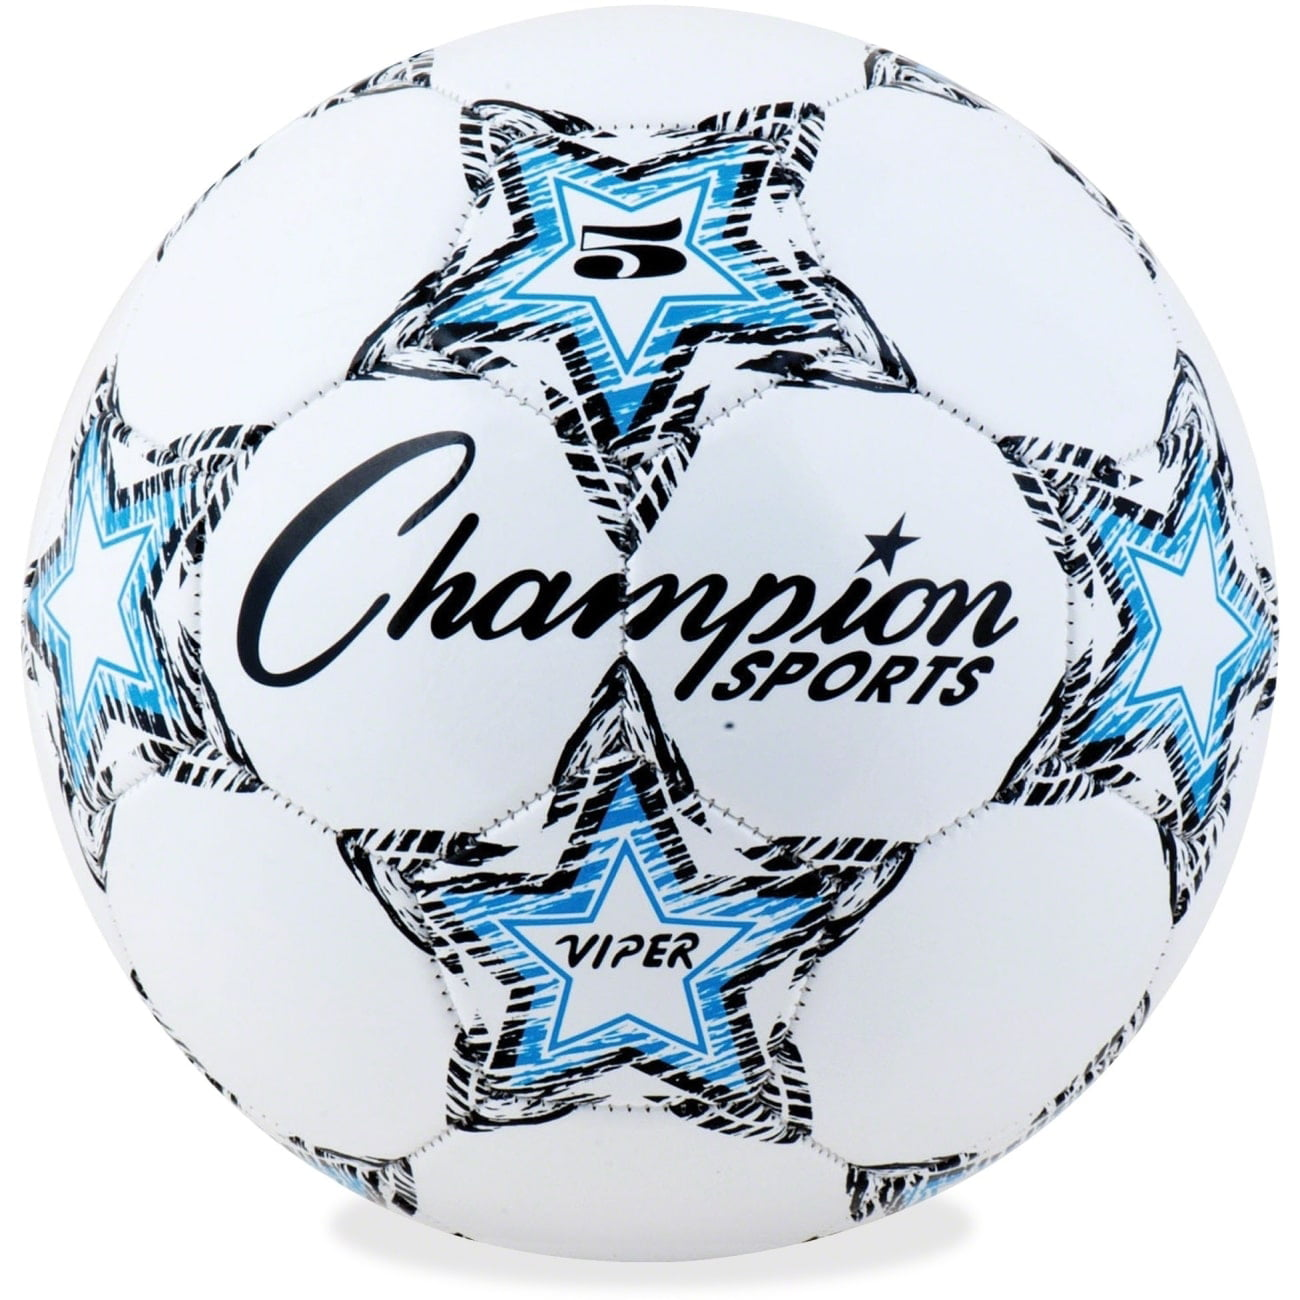 "Champion Sports VIPER Soccer Ball, Size 5, 8 1 2""- 9"" dia., White by Overstock"